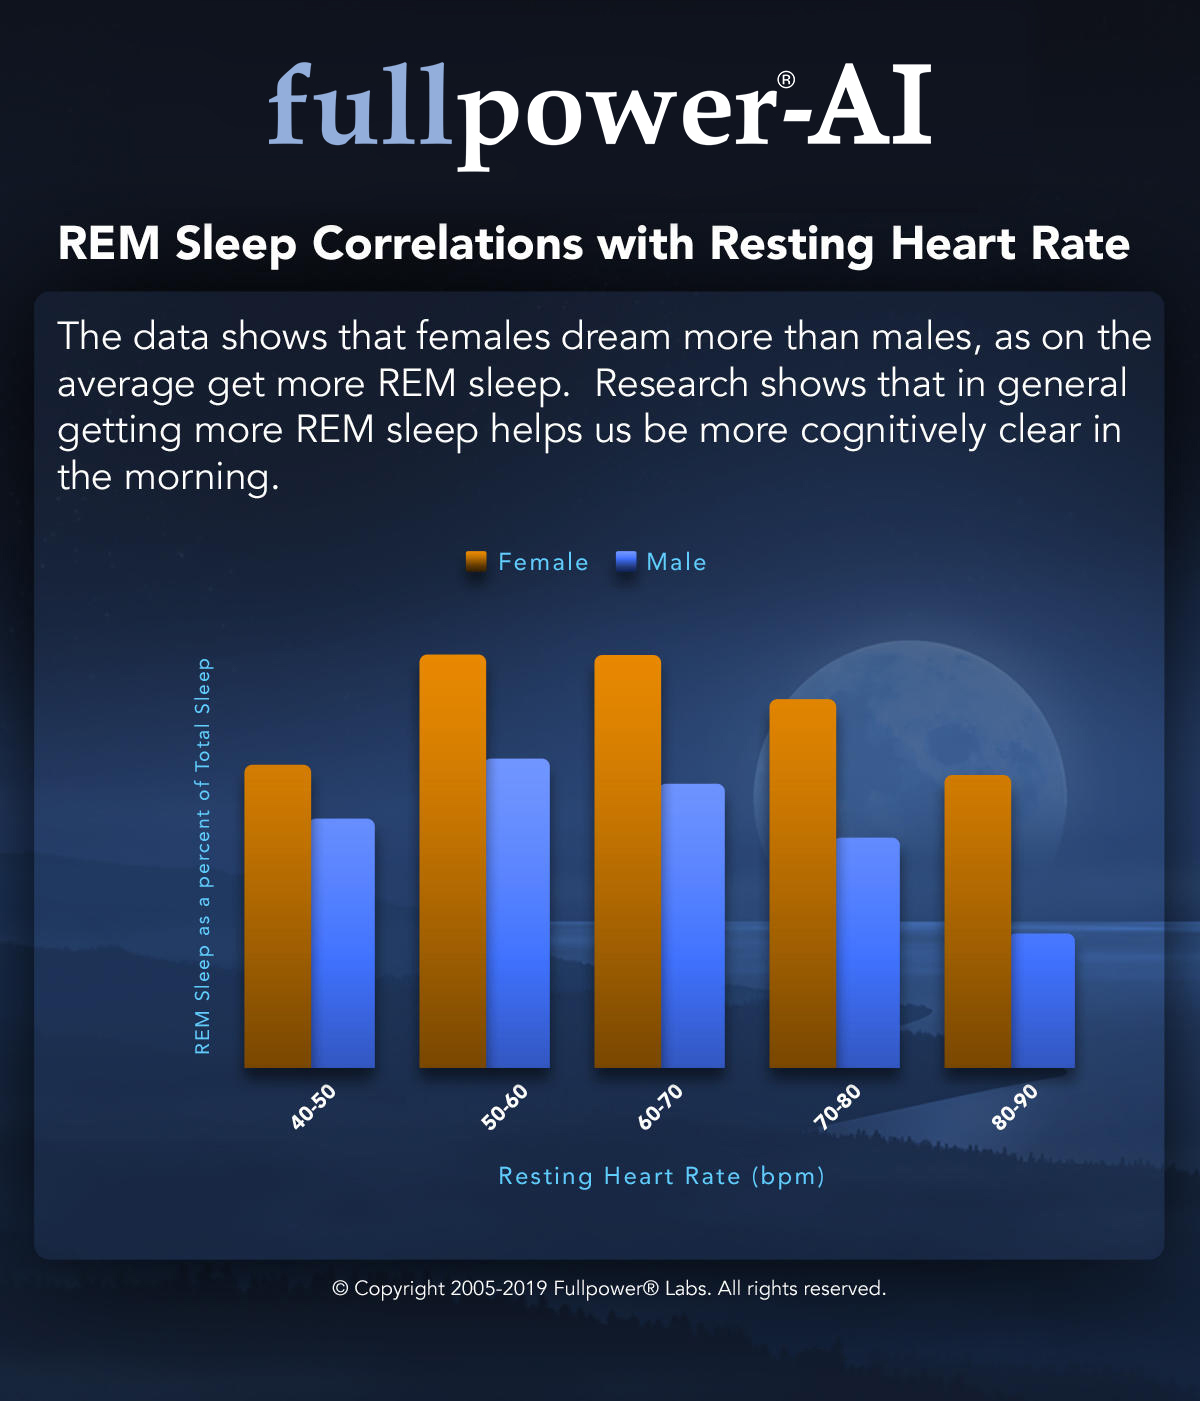 REM Sleep Correlations with Resting Heart Rate